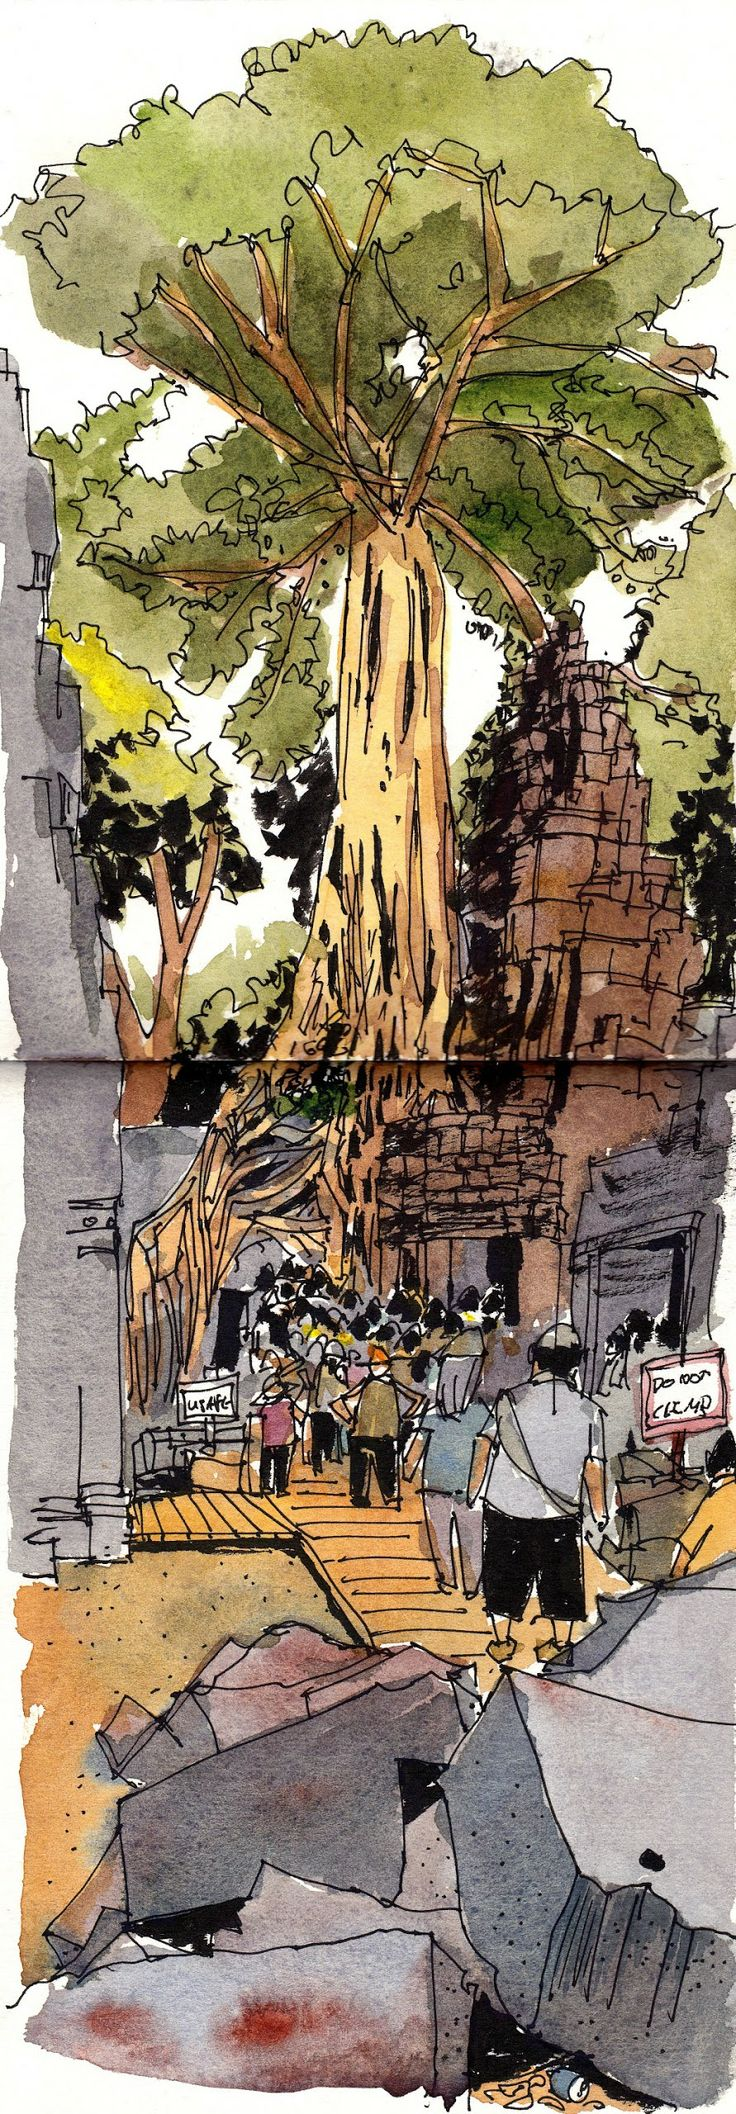 All the sketches from my Cambodia Sketching Trip 2014